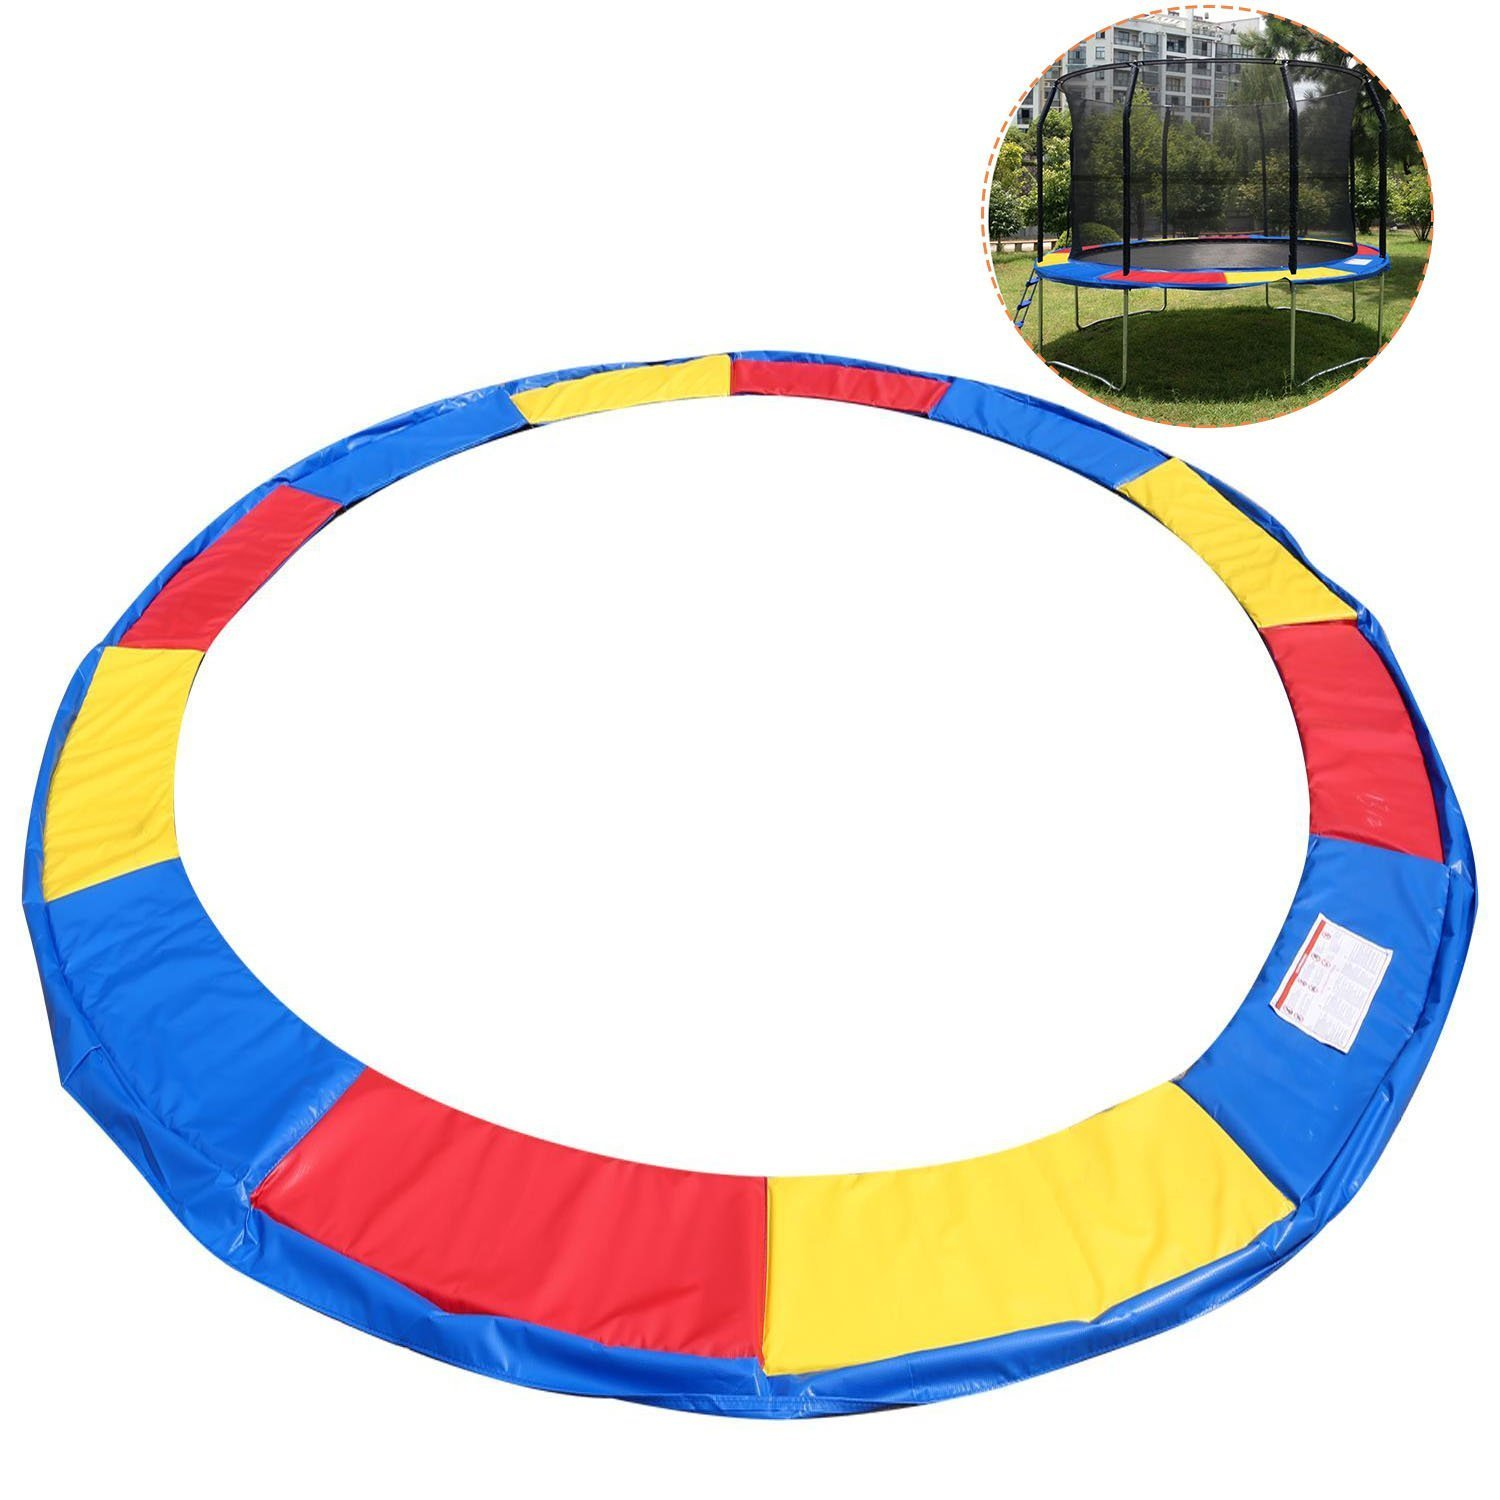 Trampoline Pad Cover 14 FT Trampoline Safety Pad EPE Foam Spring Cover Frame Replacement Multi Color US STOCK